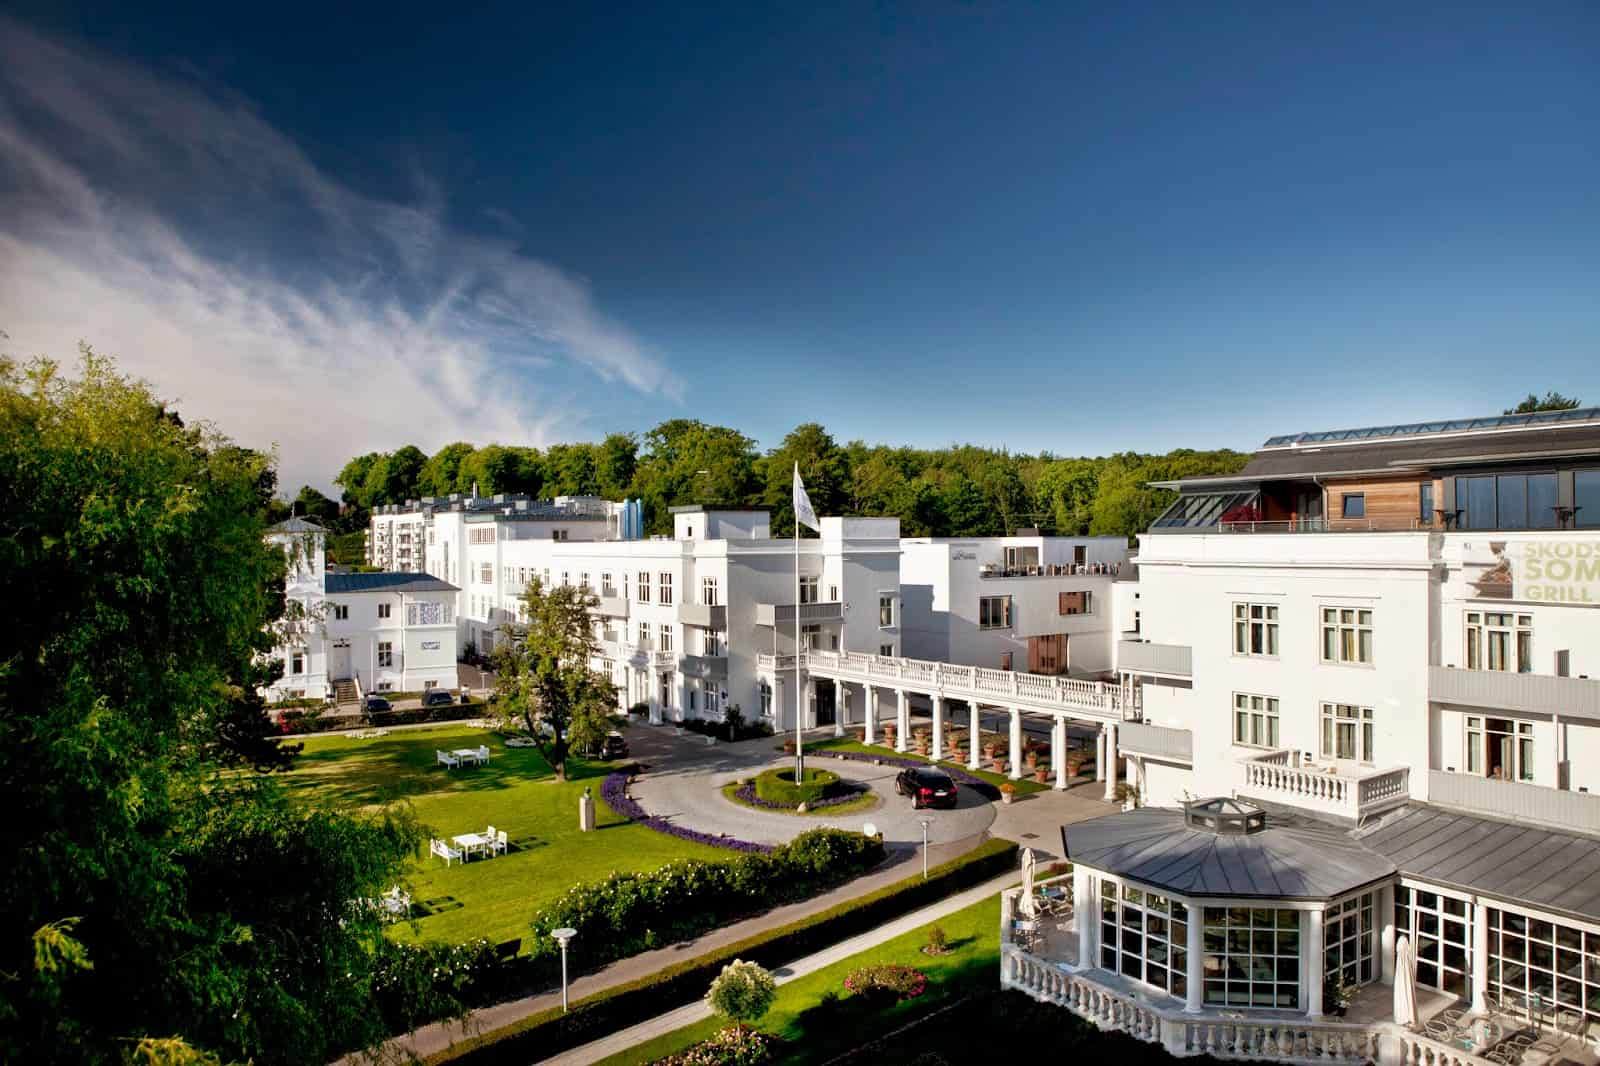 Kurhotel Skodsborg – Rediscover the luxury of simplicity